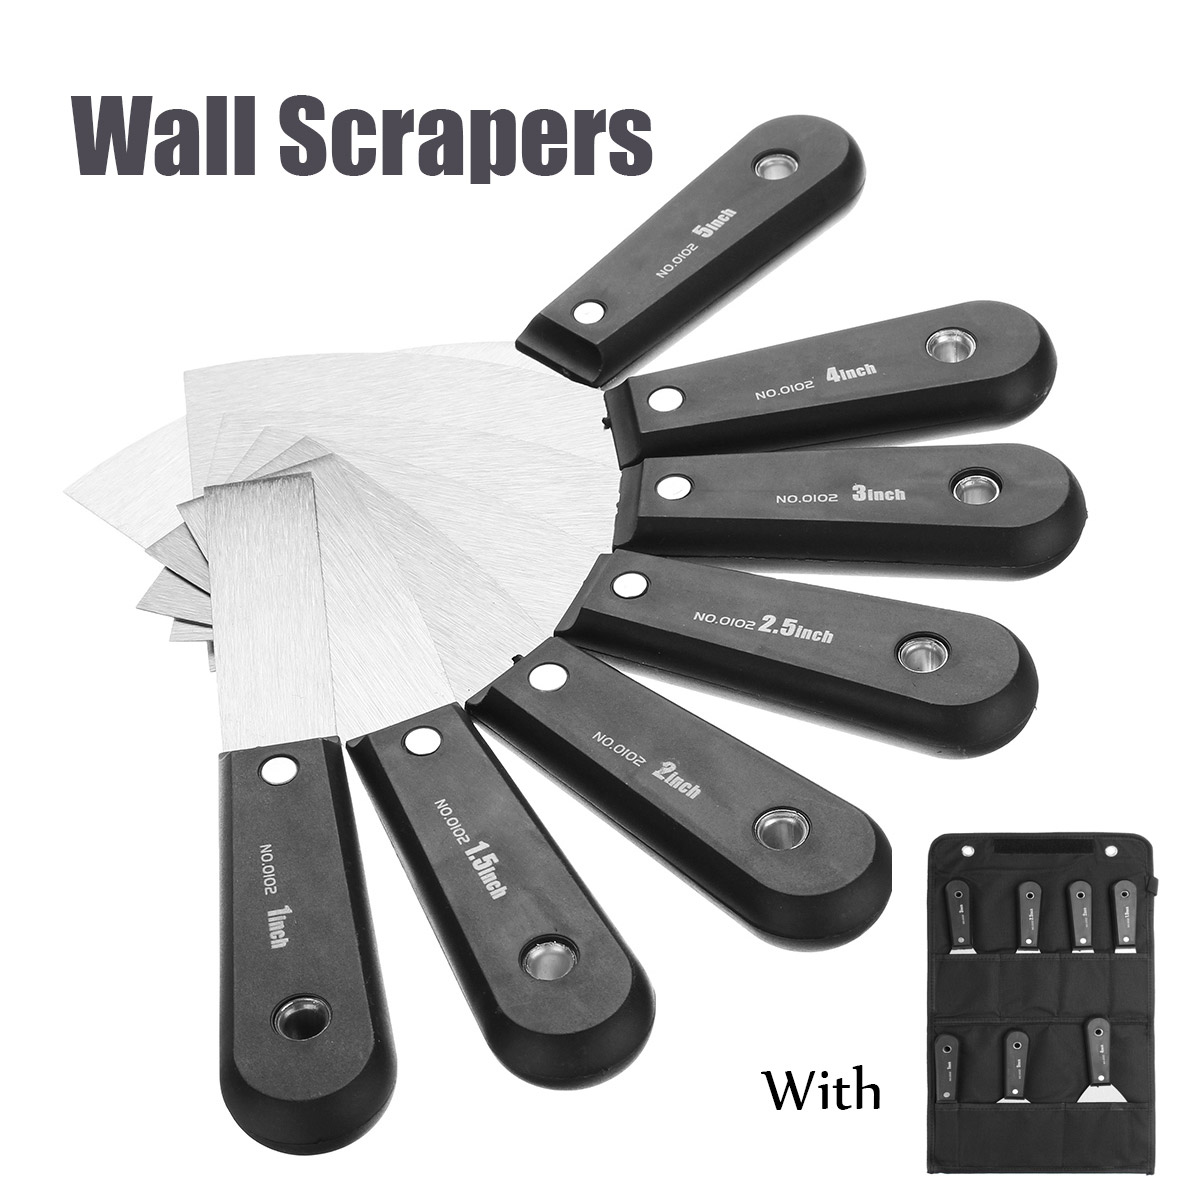 7 Pcs Stainless Steel Putty Knife Scraper Blade 1/1.5/2/2.5/3/4/5'' Wall Shovel Plastic Handle Construction Plastering Tool